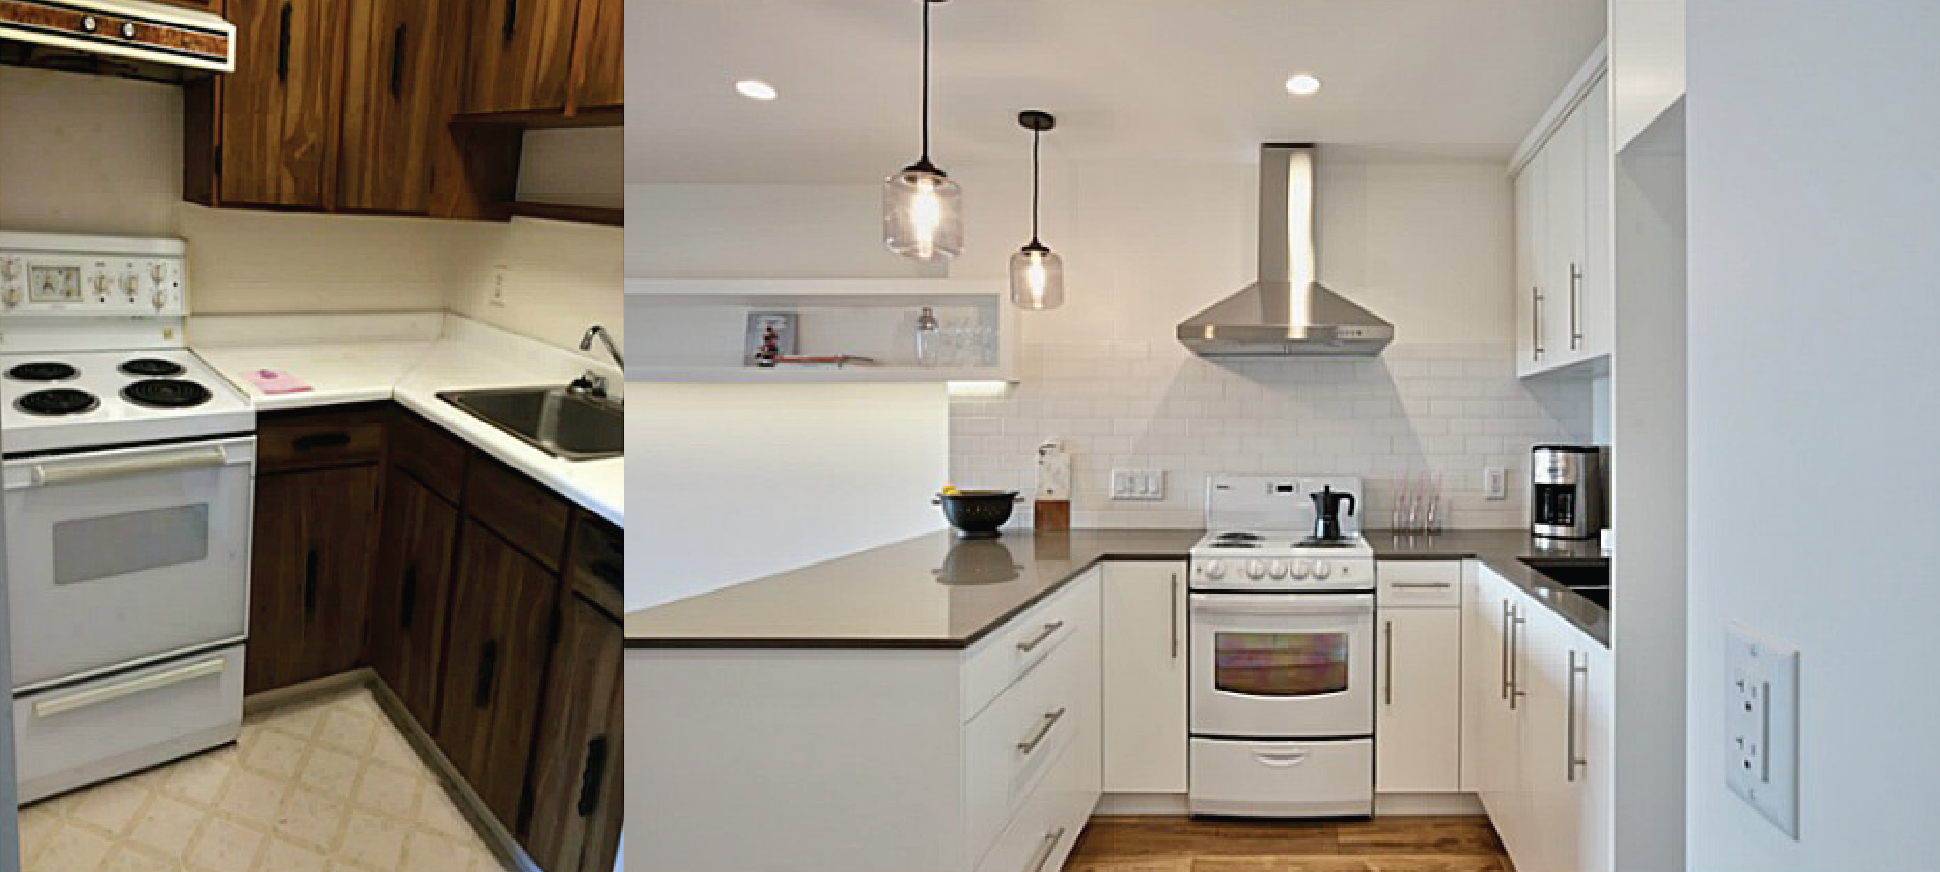 Small Kitchens Before And After The